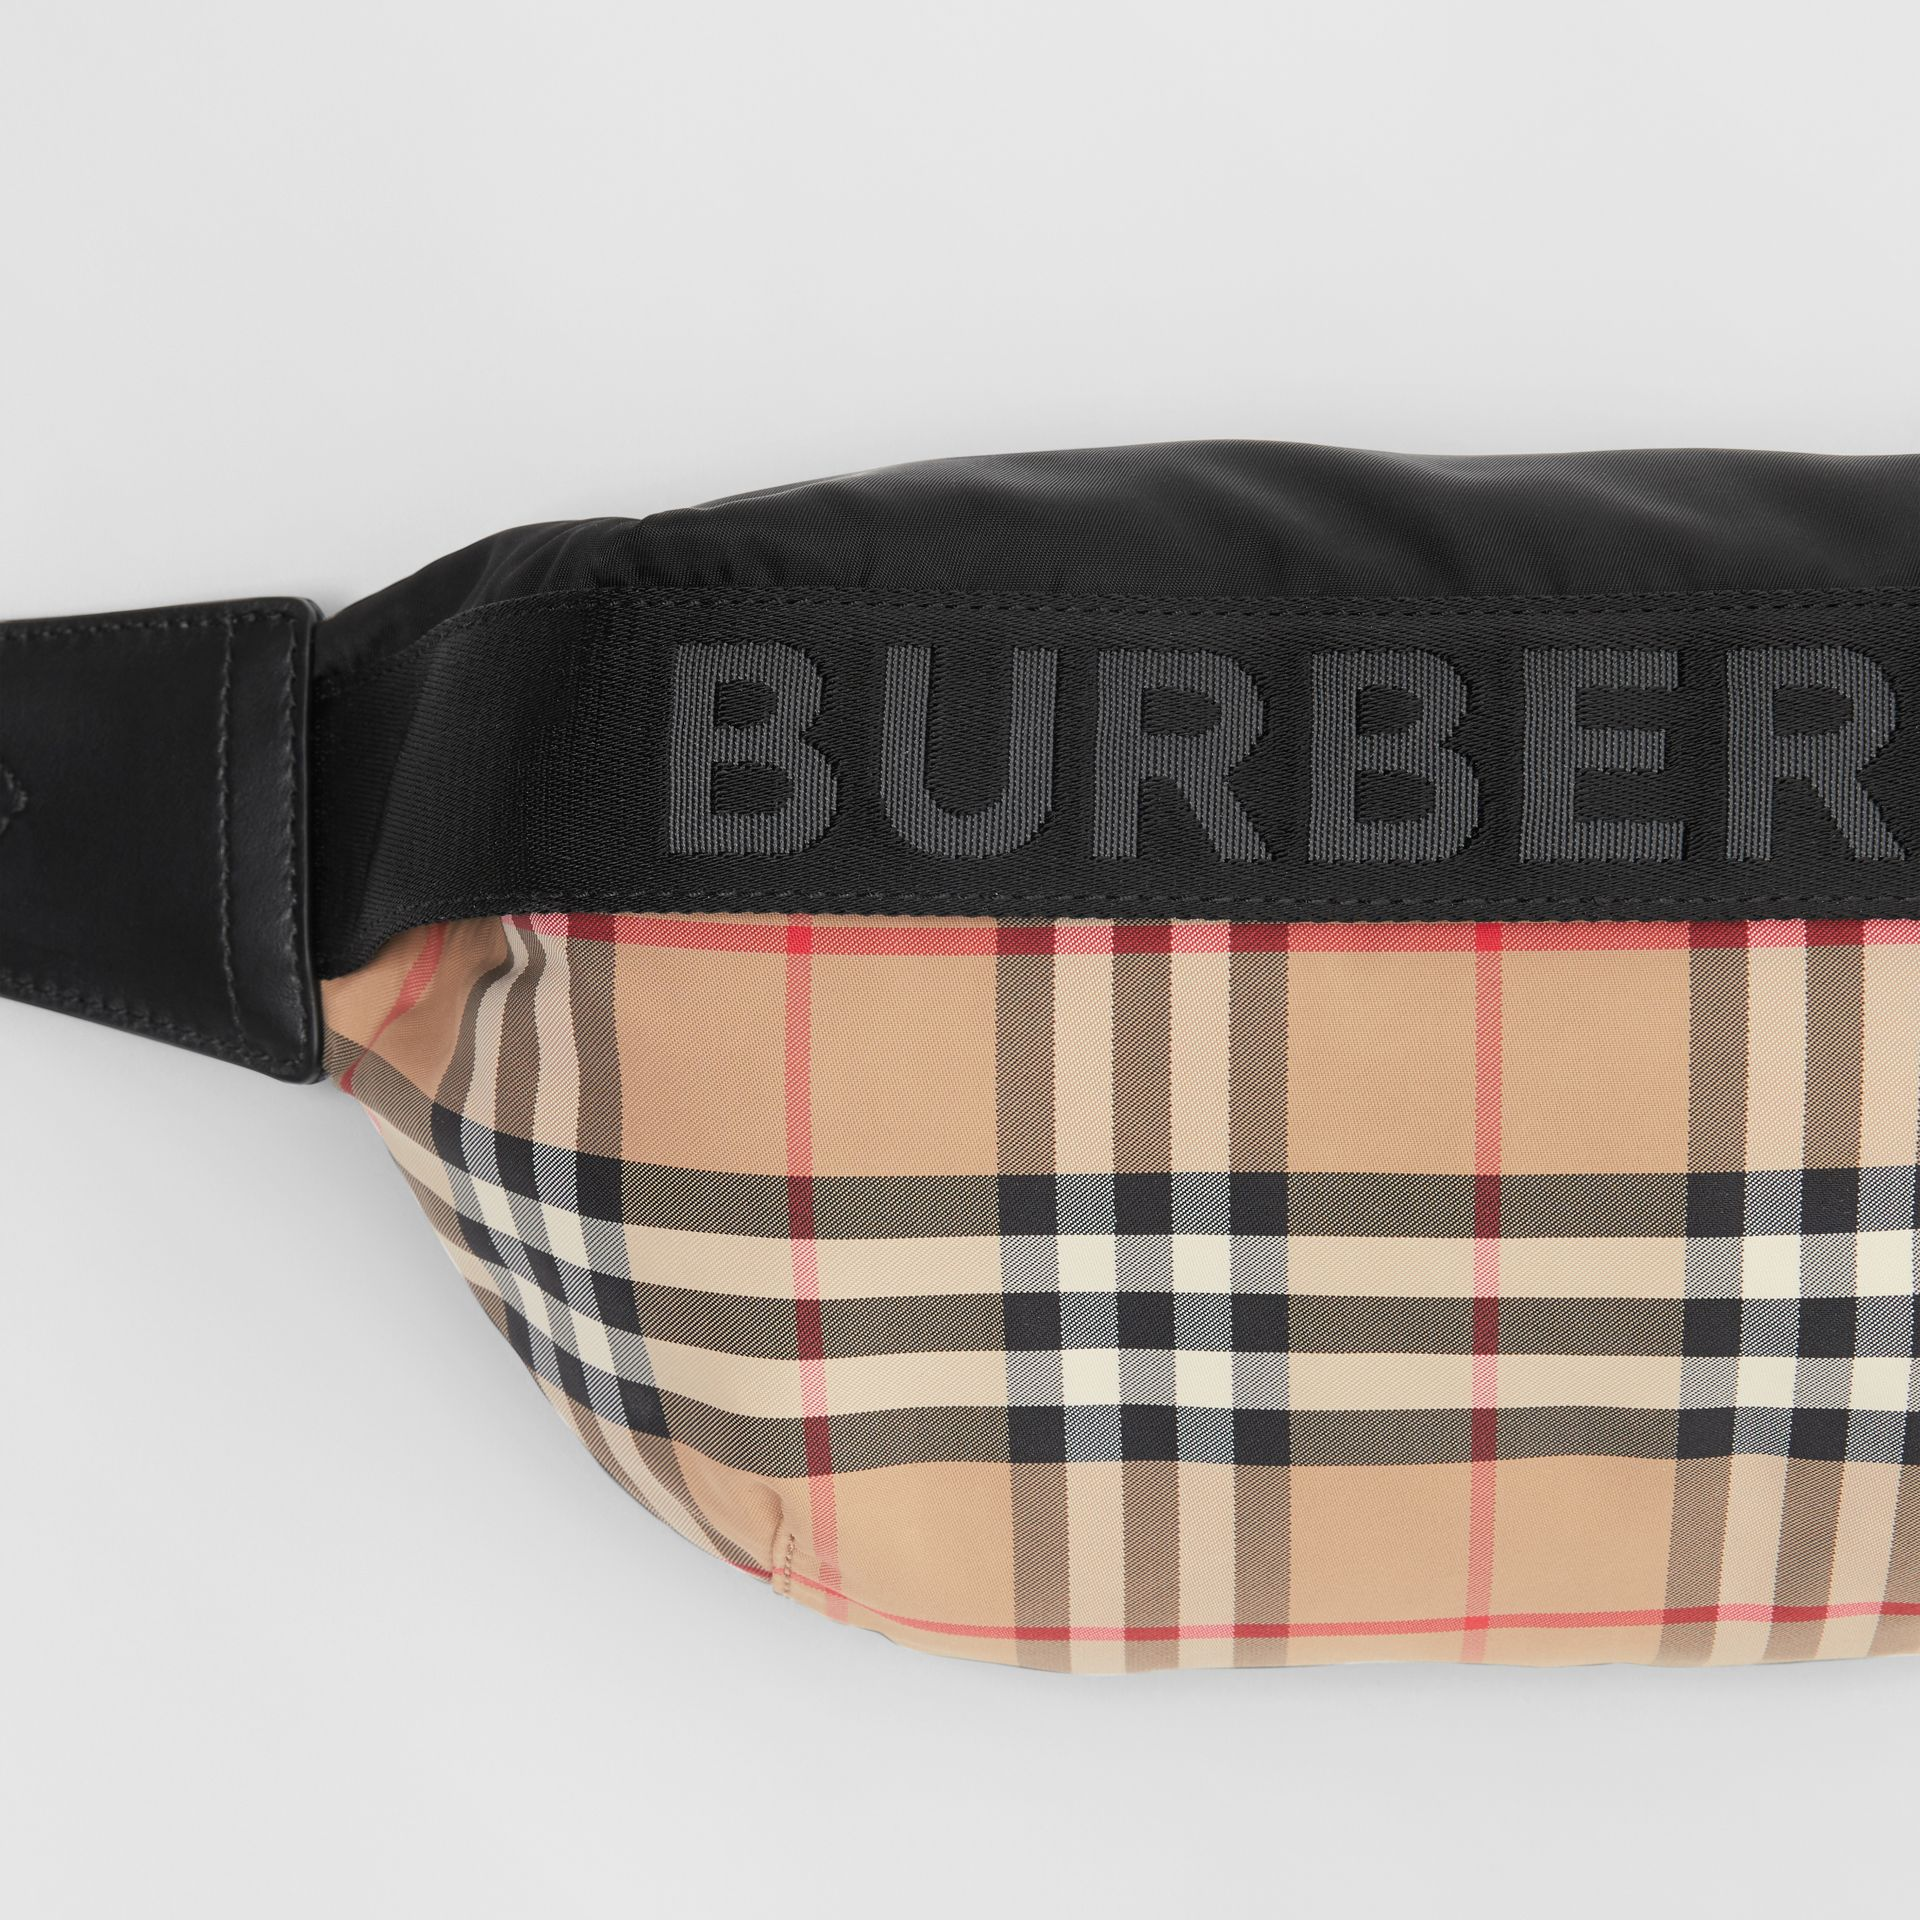 Medium Vintage Check Bum Bag in Archive Beige | Burberry United Kingdom - gallery image 1